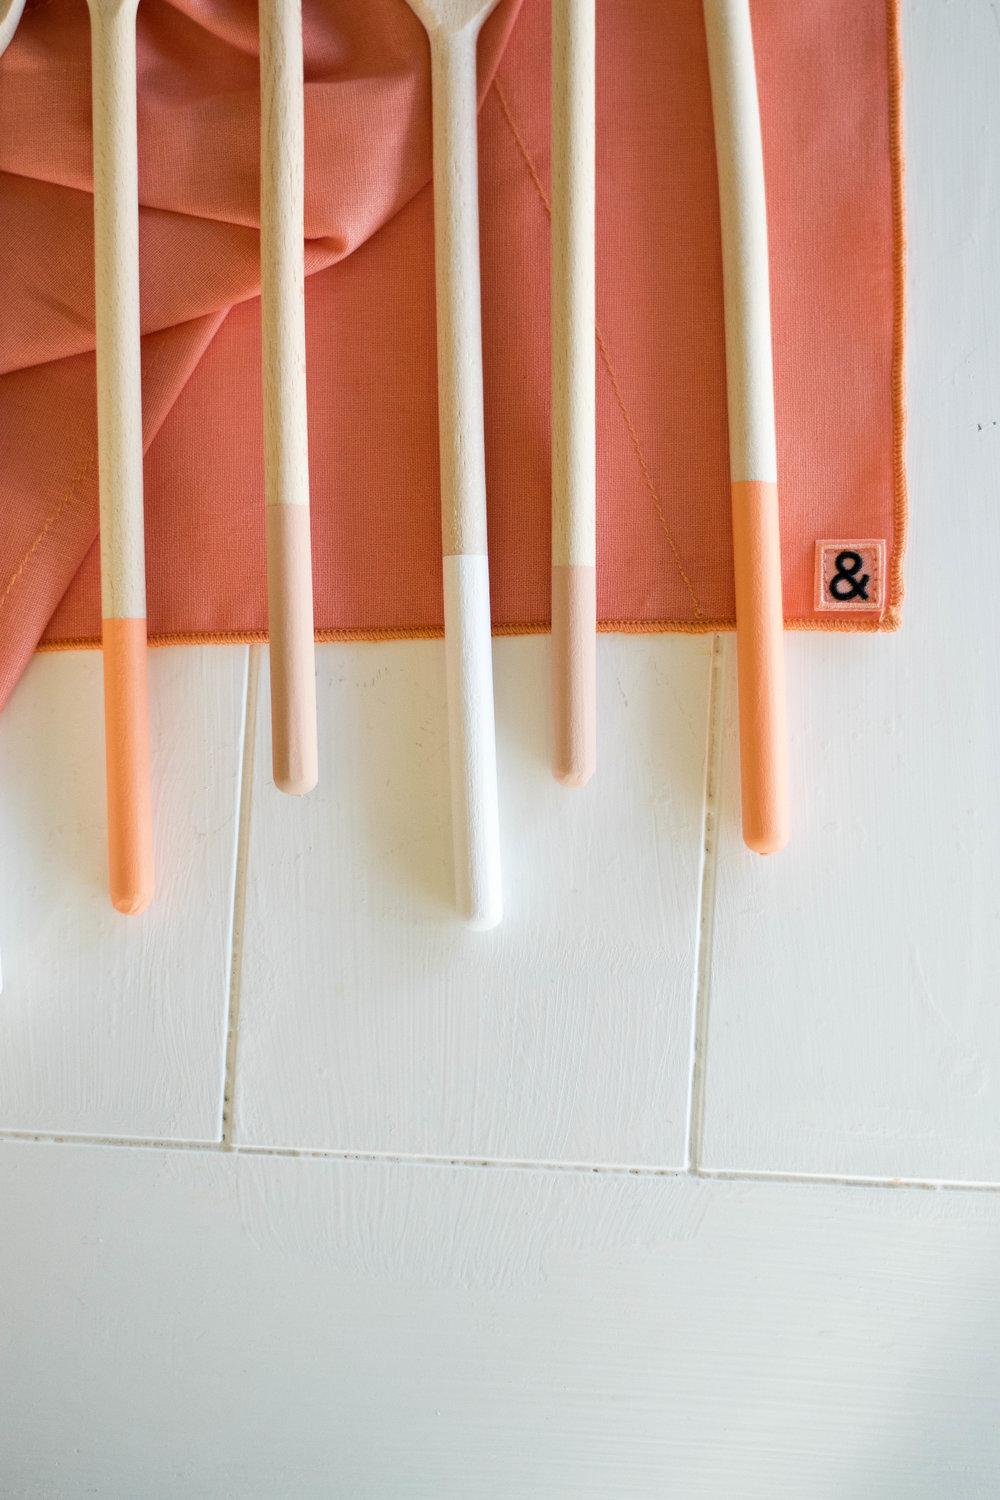 DIY Paint-Dipped Wooden Spoons | All Purpose Flour Child